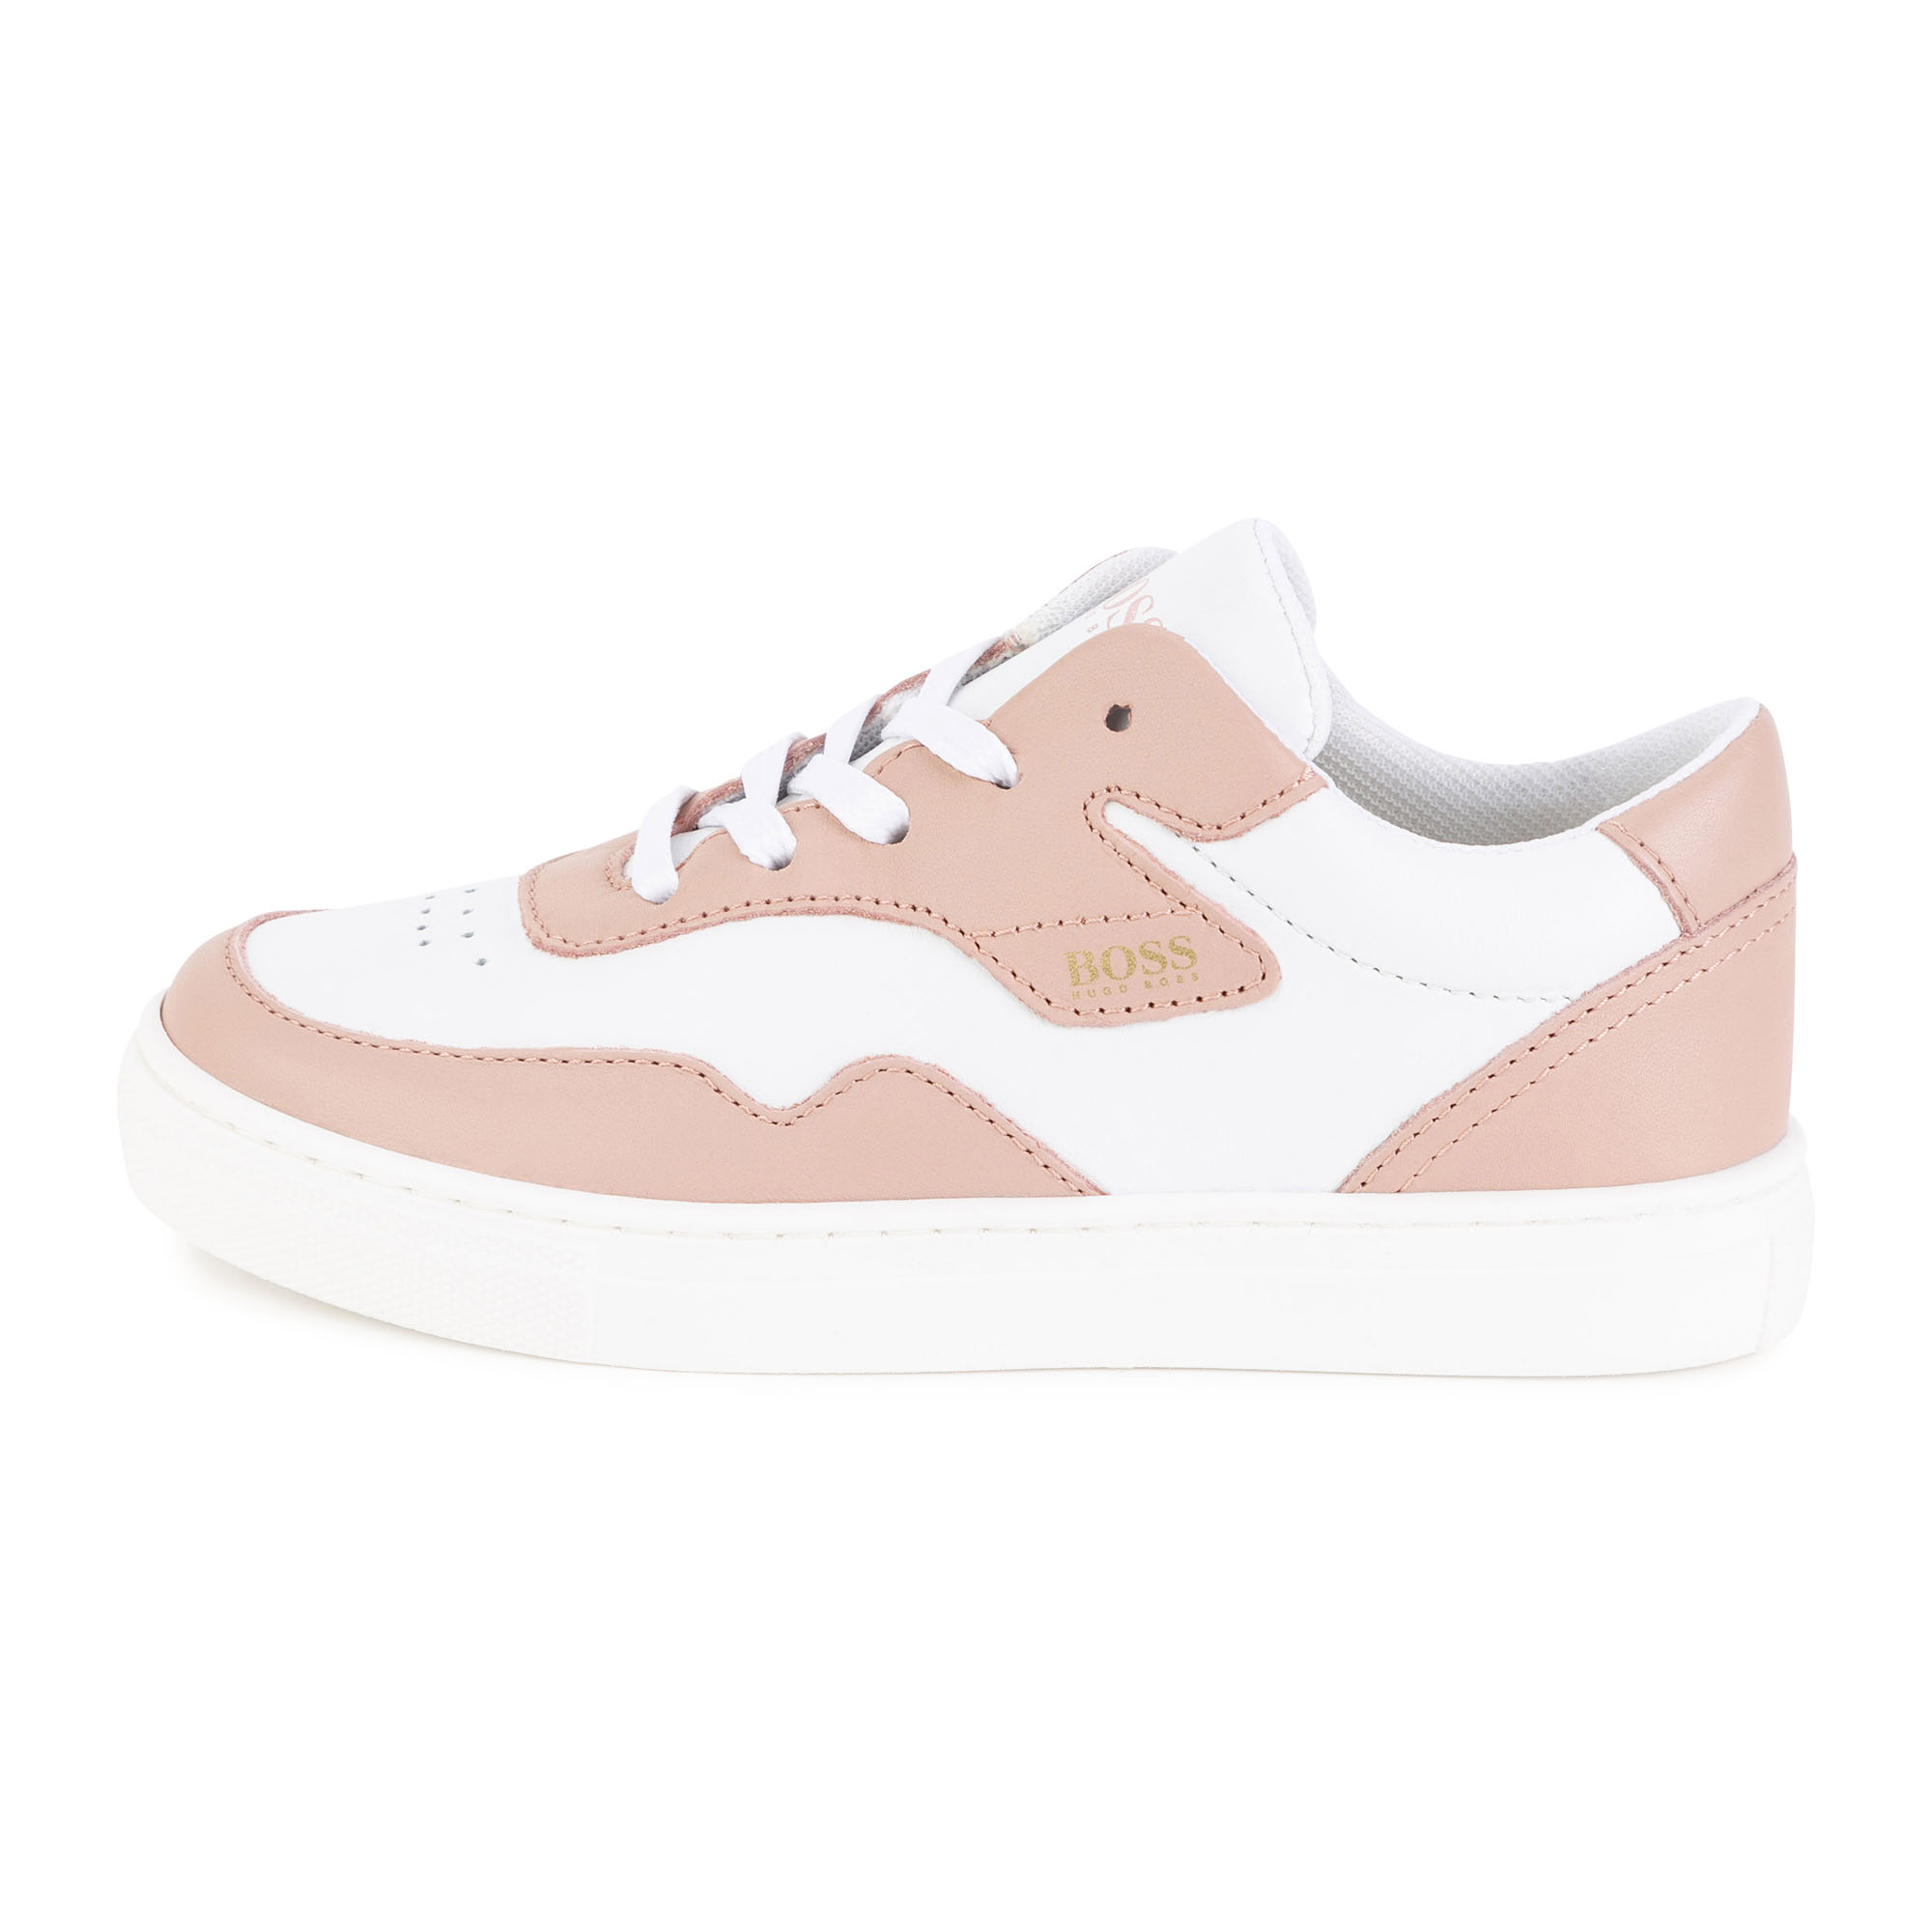 Baskets en cuir bicolores BOSS pour FILLE